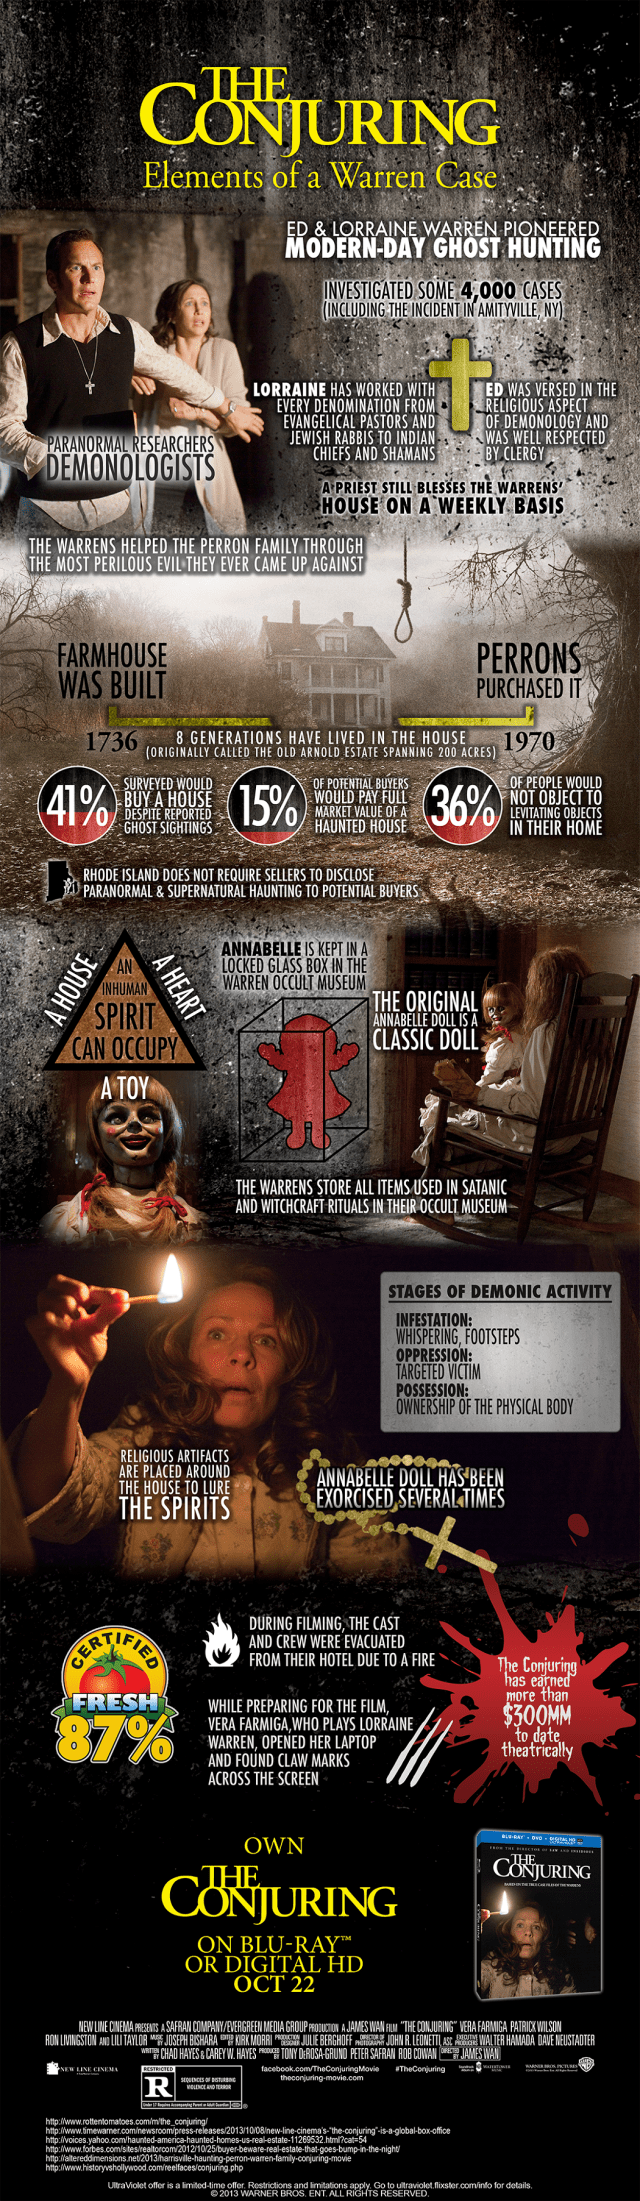 ConjuringInfographic(2) - Copy